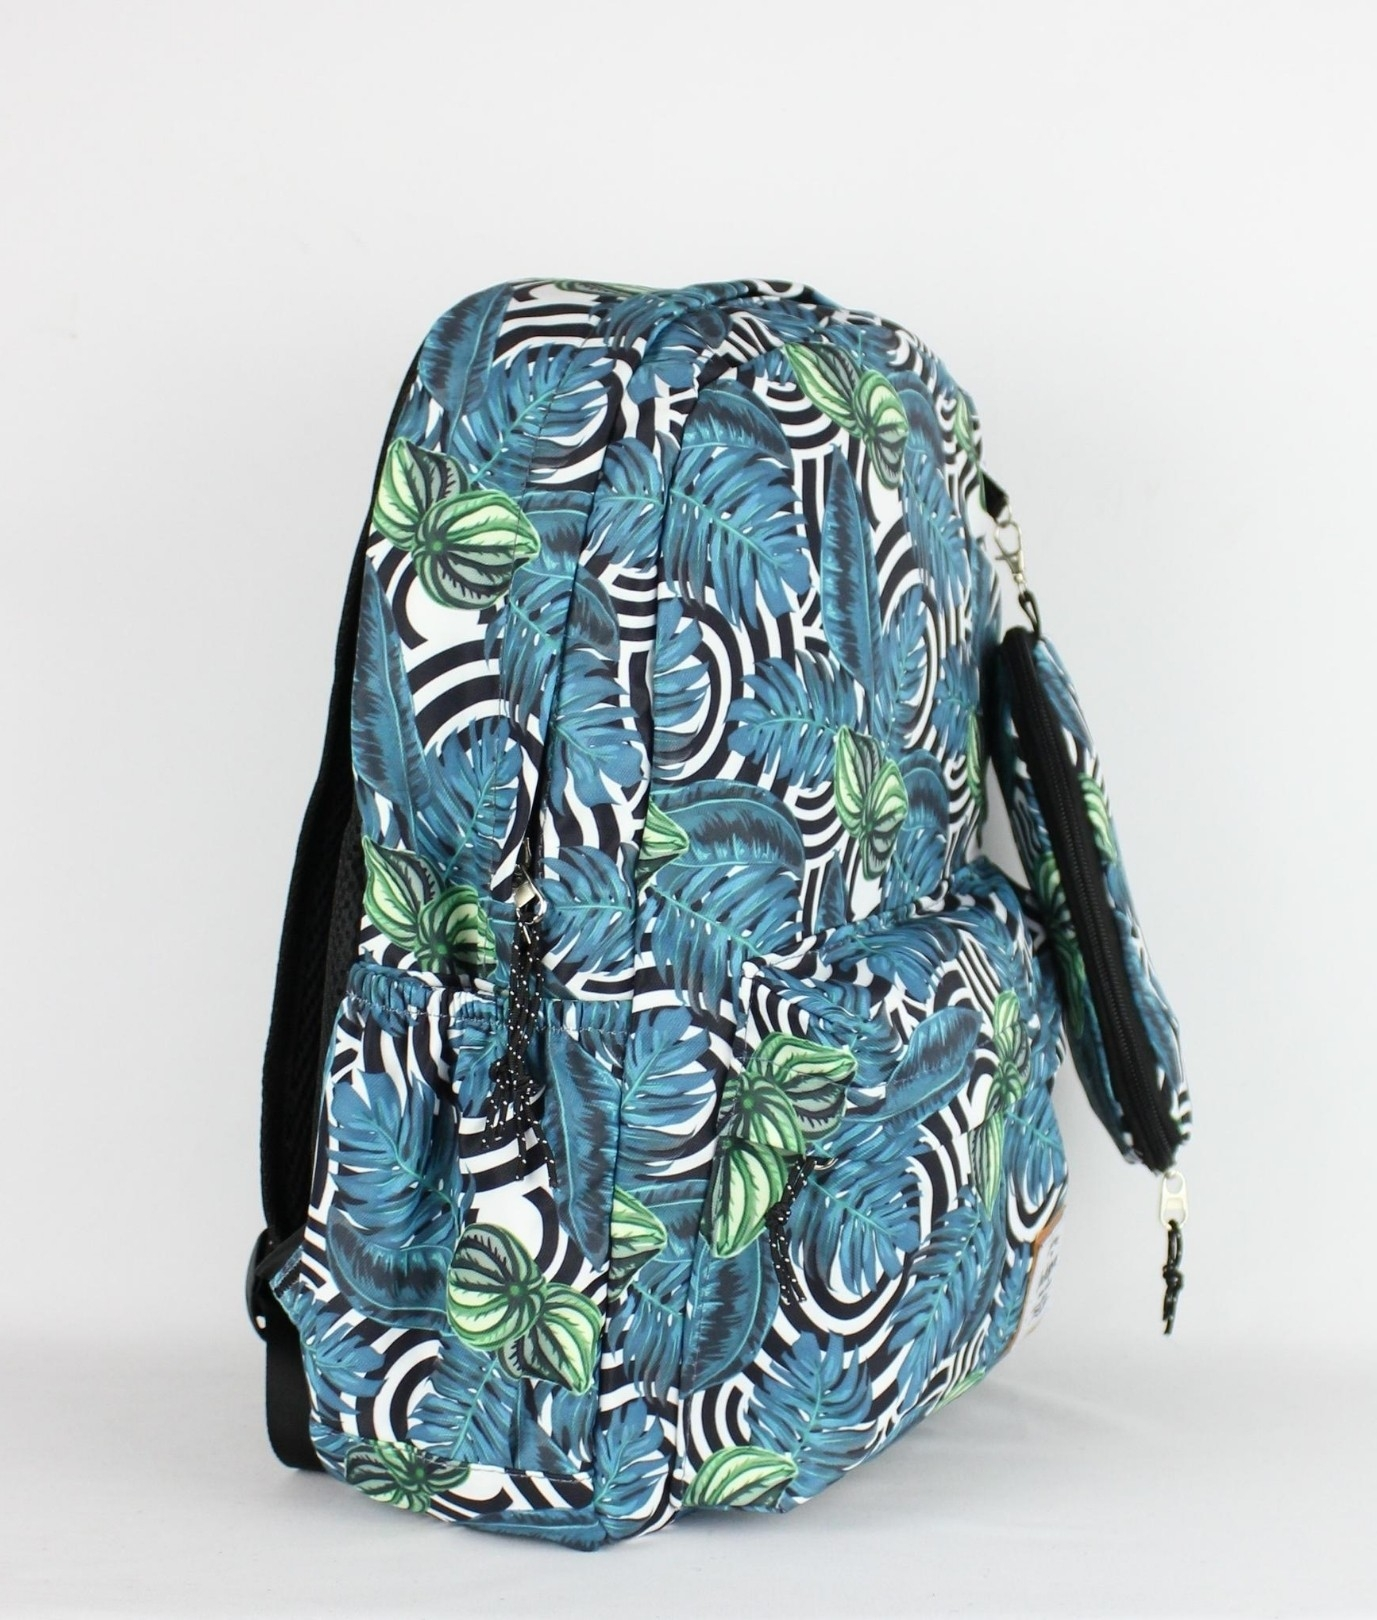 Sac à dos Just - Feuilles Turquoise